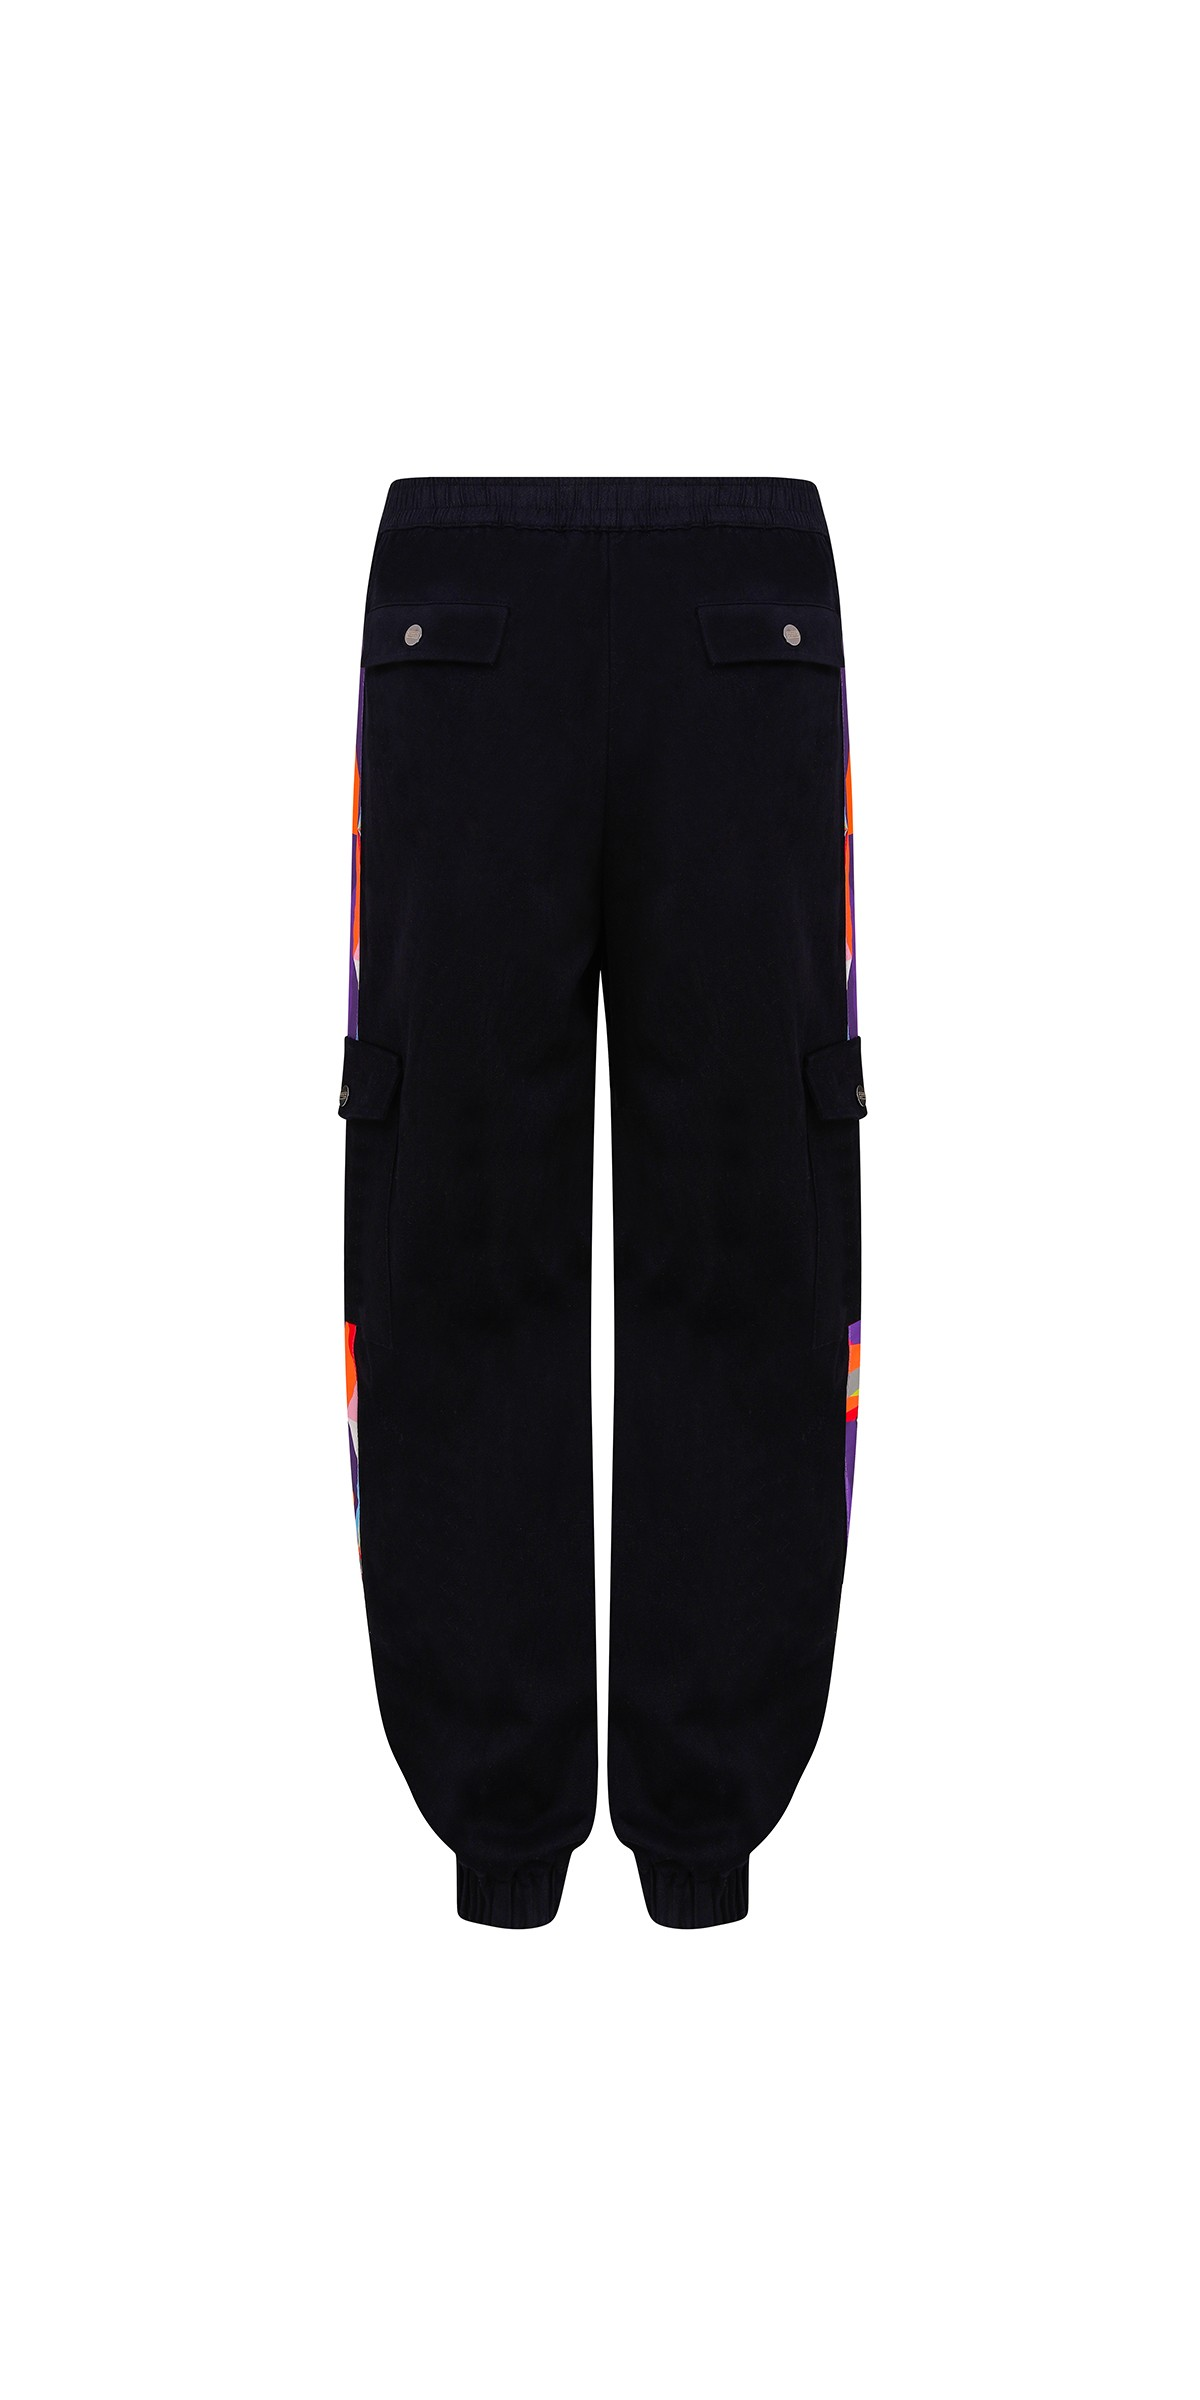 Lily Cargo Pants image no:3